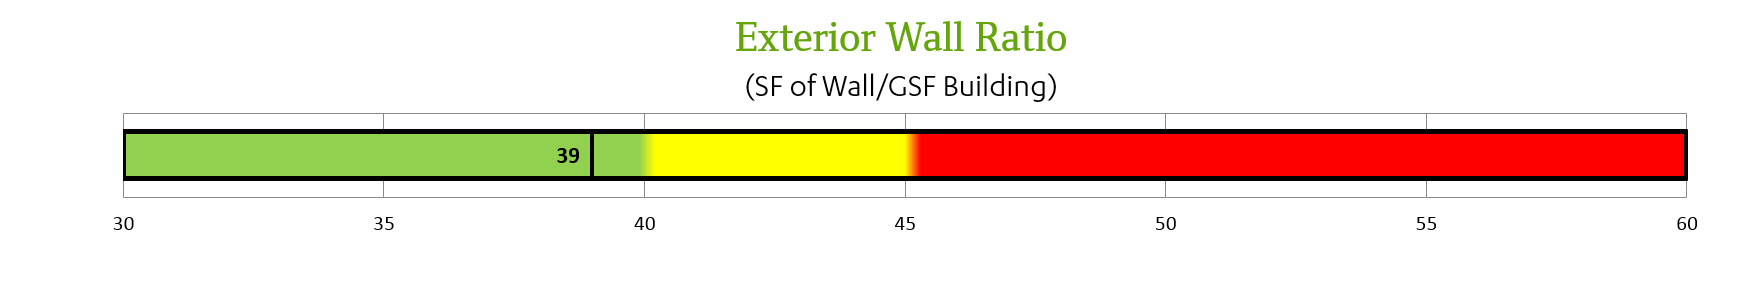 Exterior Wall Ratio